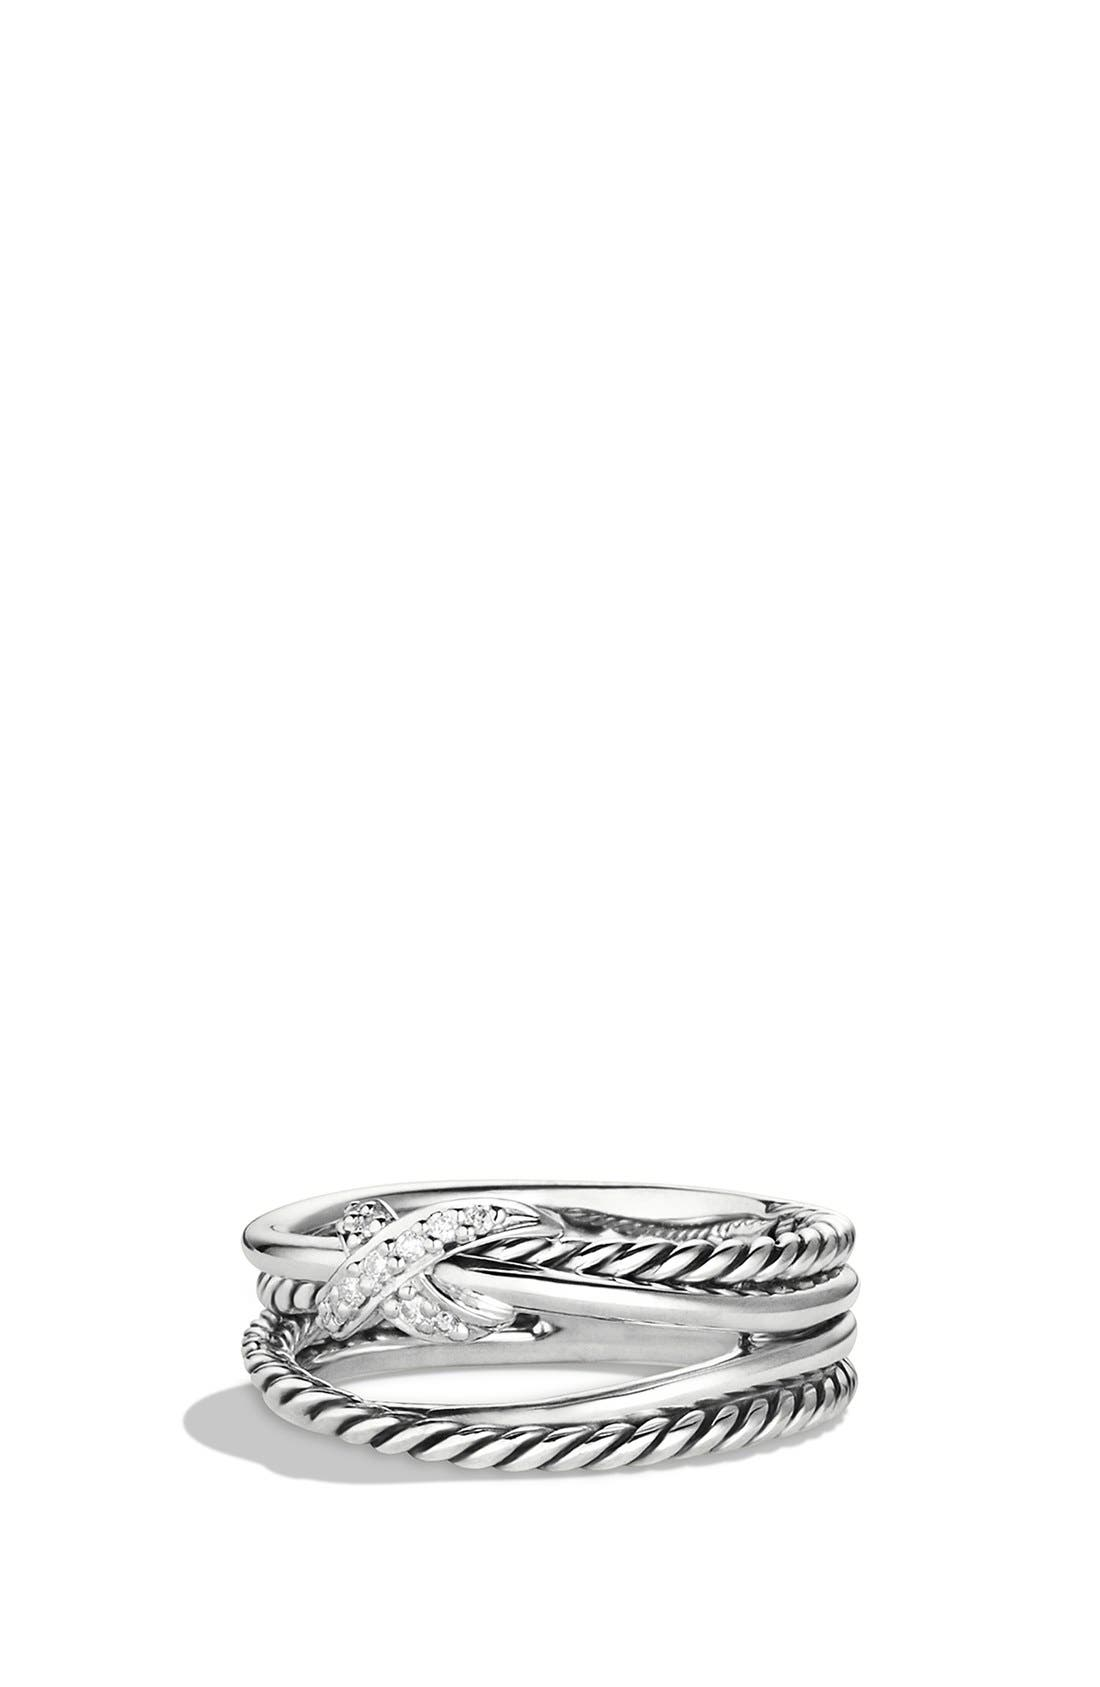 Main Image - David Yurman 'X Crossover' Ring with Diamonds